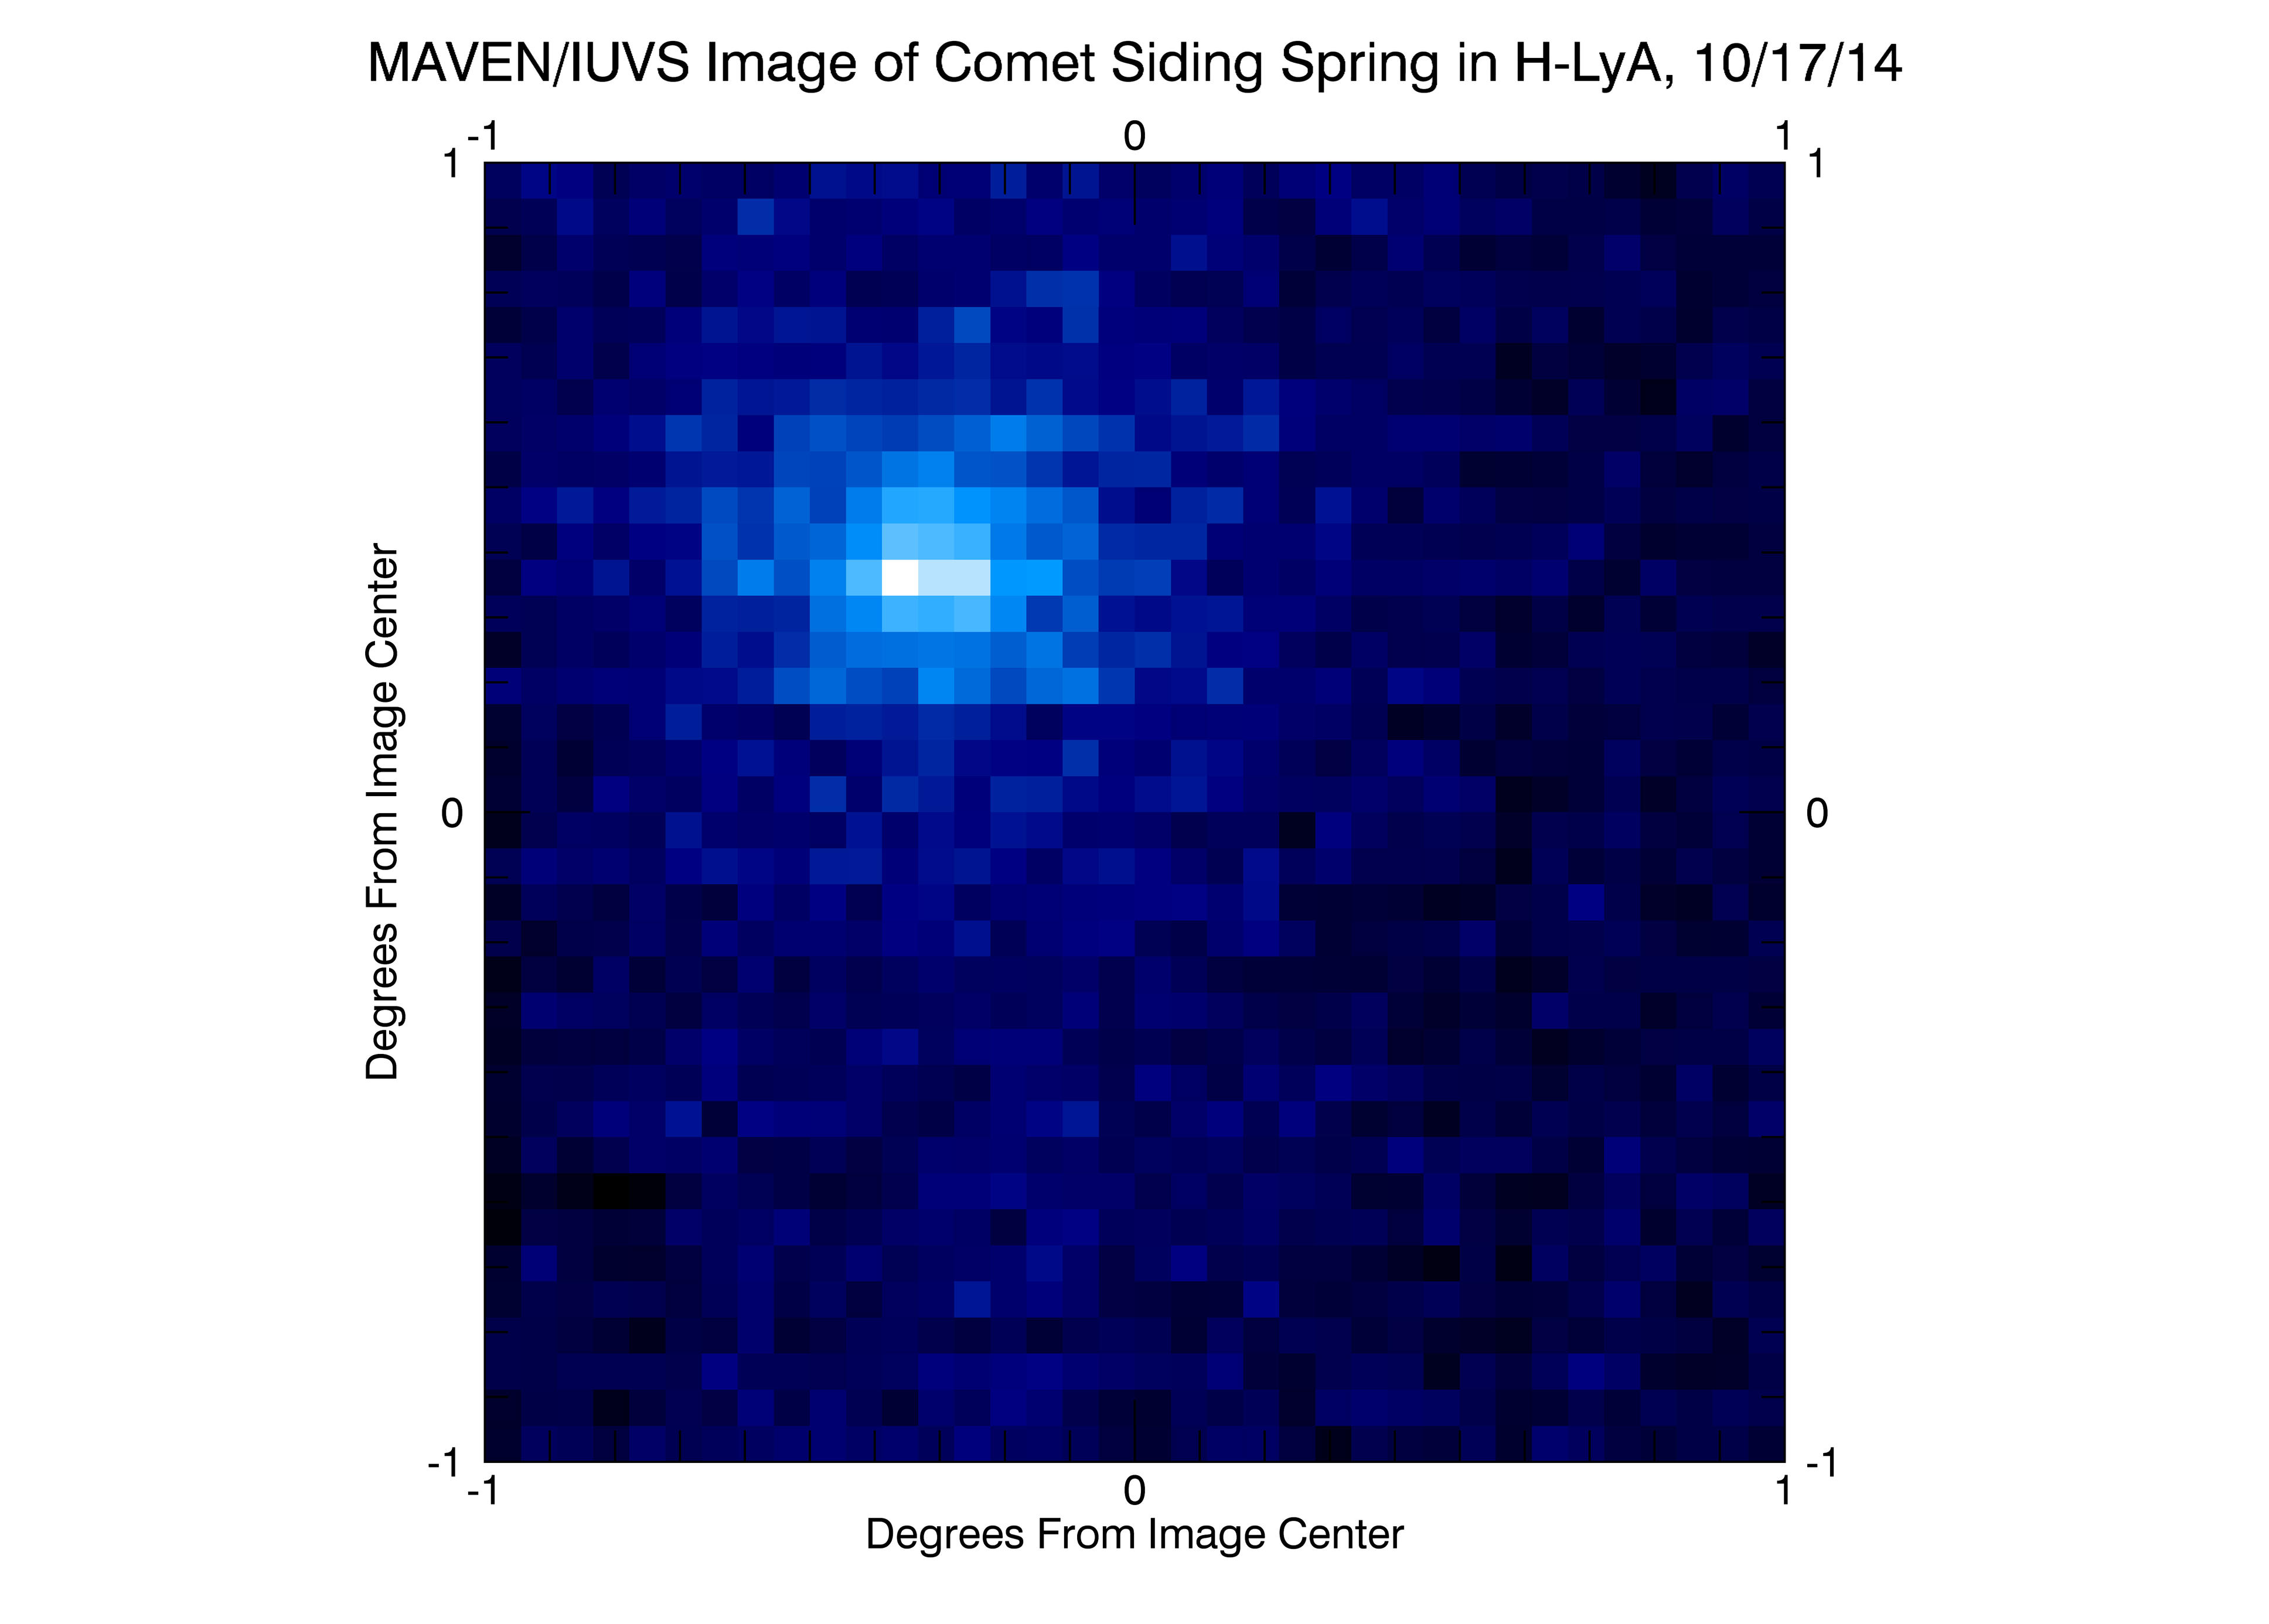 NASA's MAVEN spacecraft obtained this ultraviolet image of hydrogen surrounding comet Siding Spring on Oct. 17, 2014, two days before the comet's closest approach to Mars.